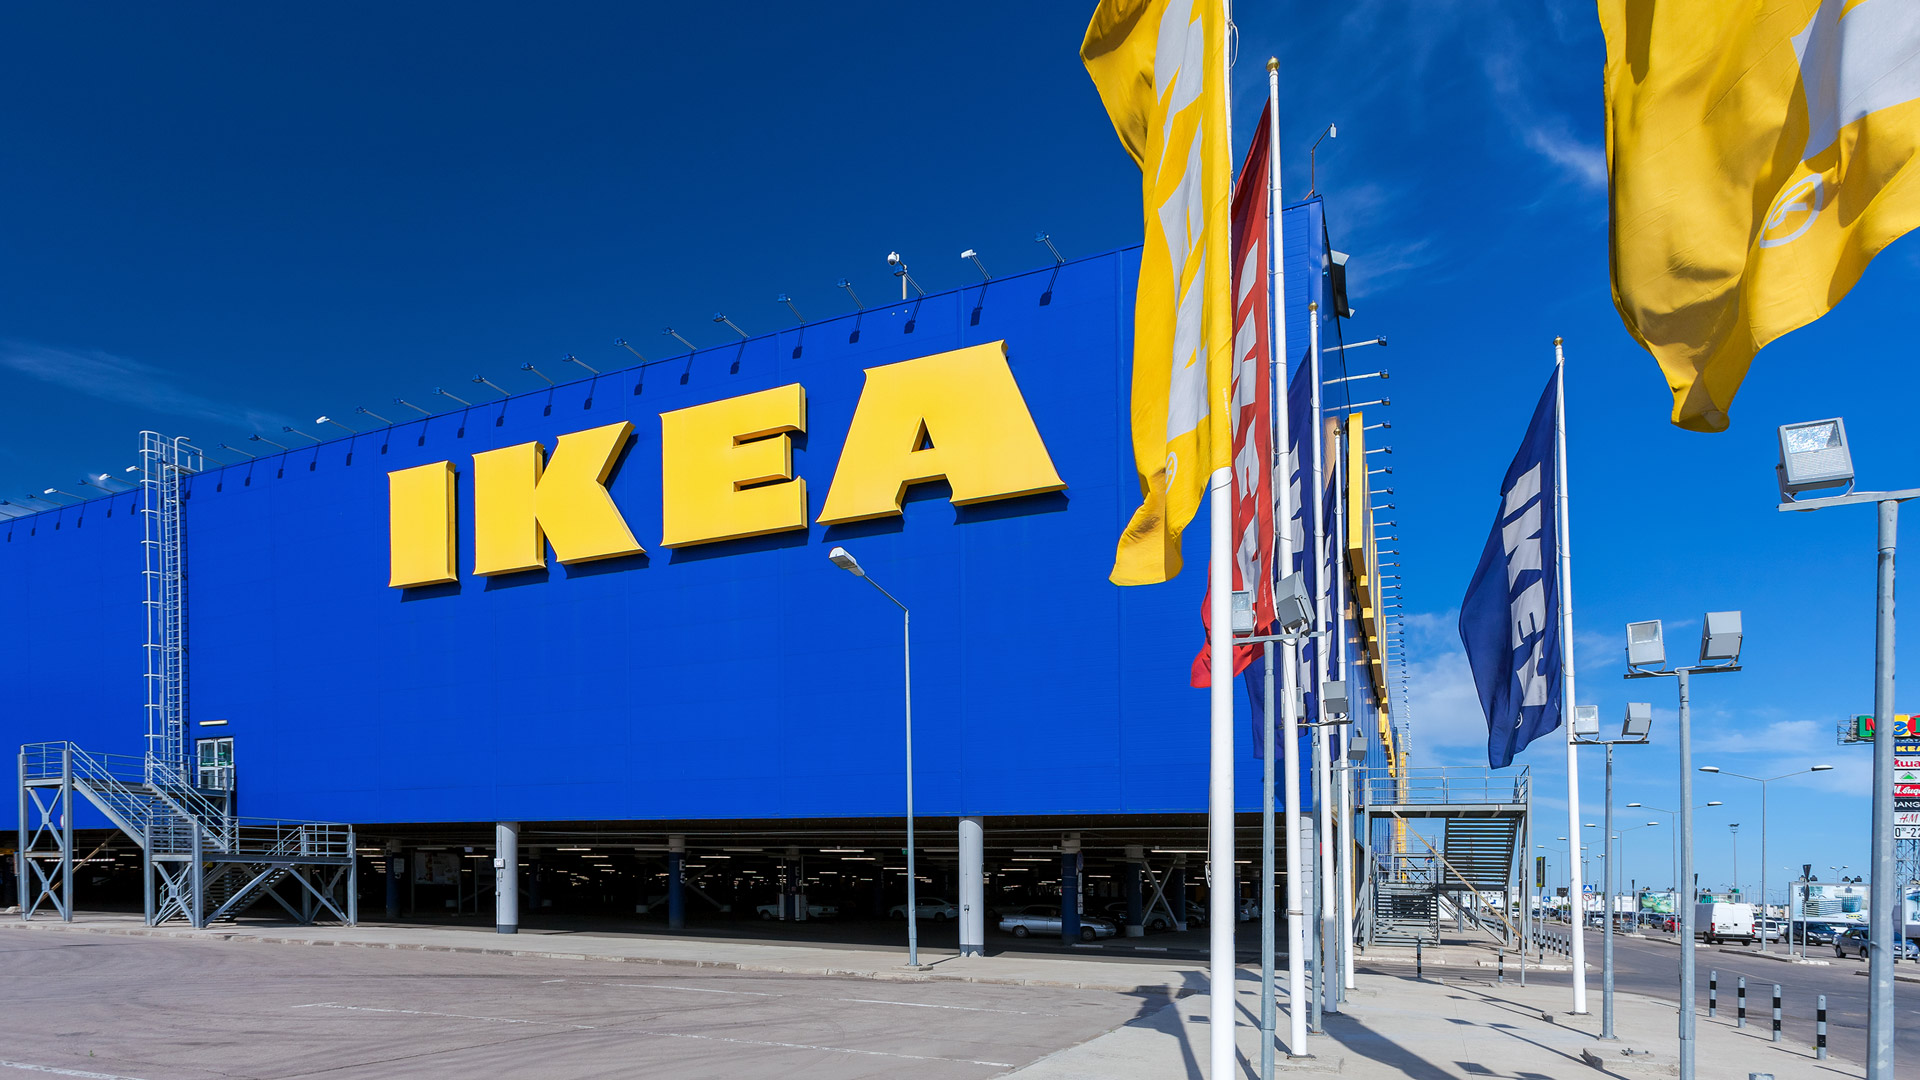 download ikea wallpaper gallery